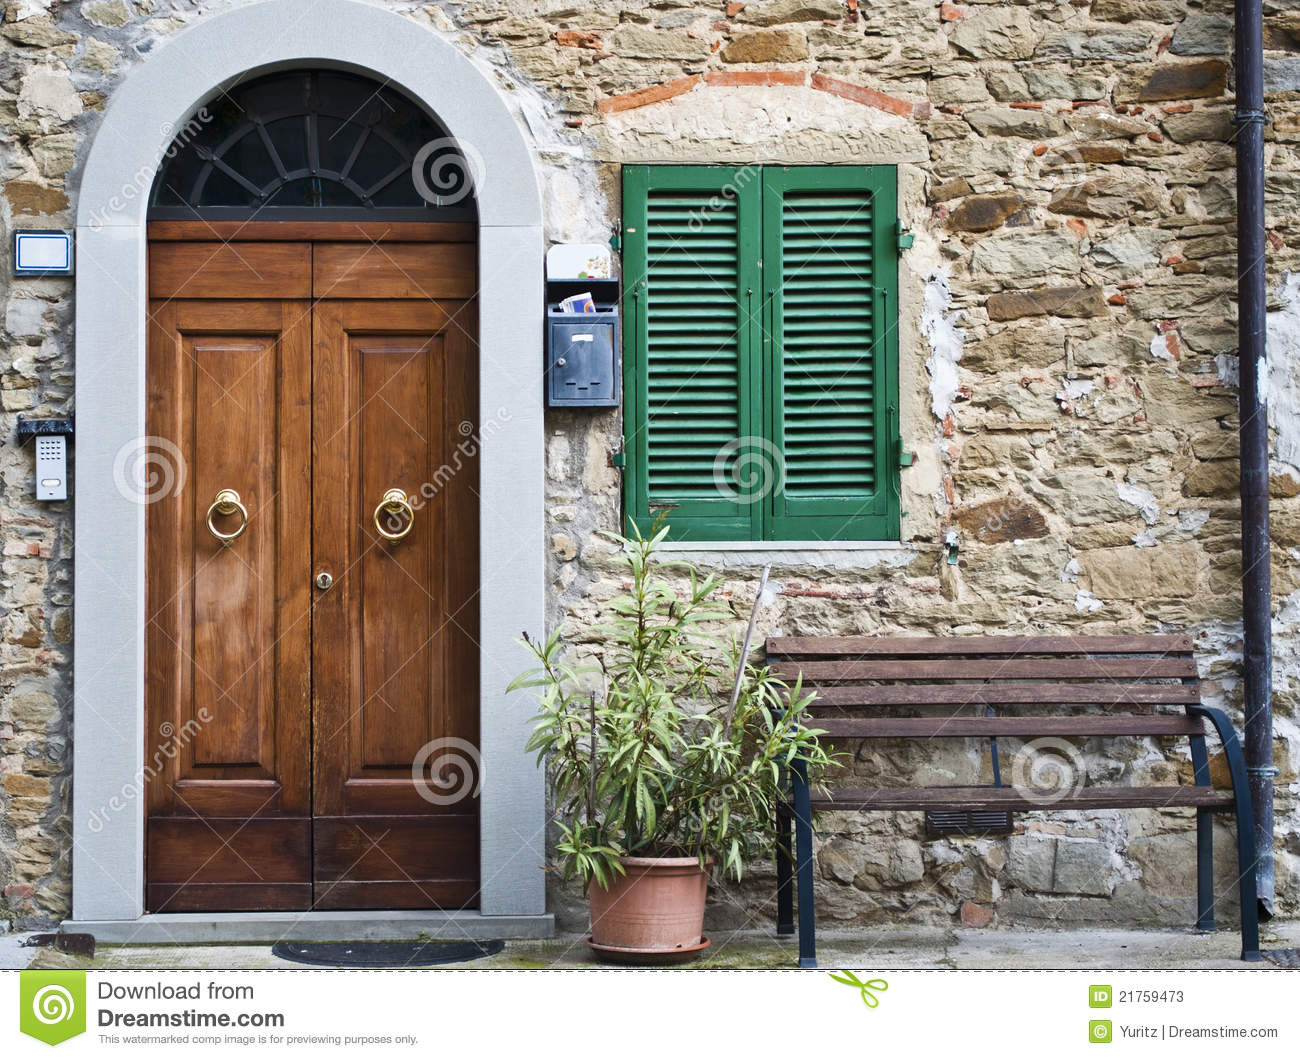 1059 #6D472F The Vintage Italian Front Door Of An Old House In Tuscany. save image Vintage Exterior Doors 41071300